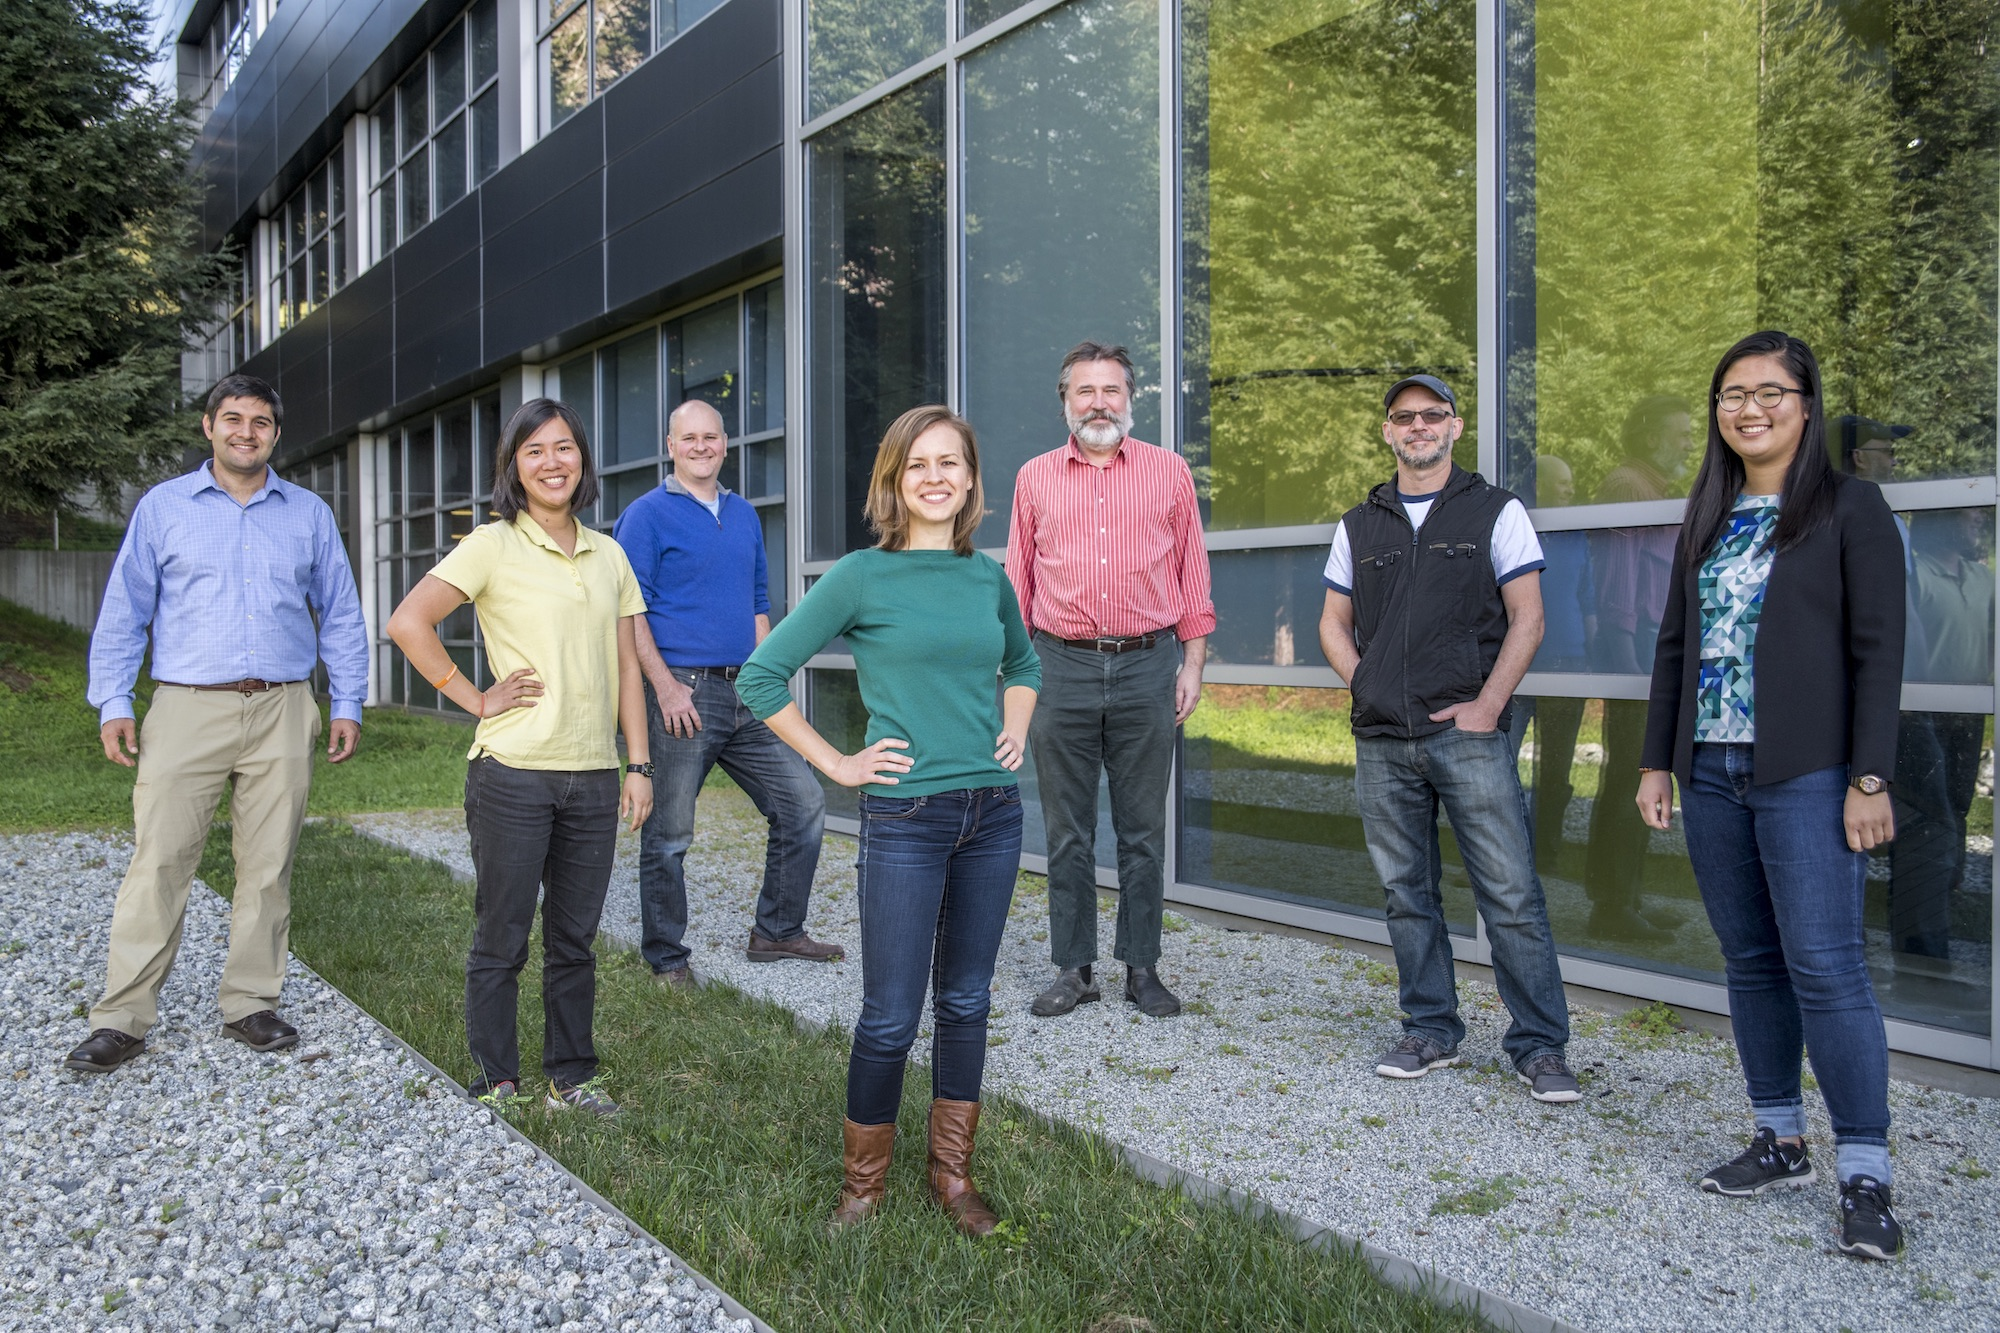 Laminera's team comprises (front row, left to right) Stephanie Liu, Lauren Otto, Ph.D. (center), and Rowena Ng. It also includes Molecular Foundry collaborators and co-developers (back row, left to right) Ed Barnard, Ph.D., Adam Schwartzberg, Ph.D., Shaul Aloni, Ph.D., Tev Kuykendall, Ph.D., and (not pictured) Alan Buckley and Ed Wong.